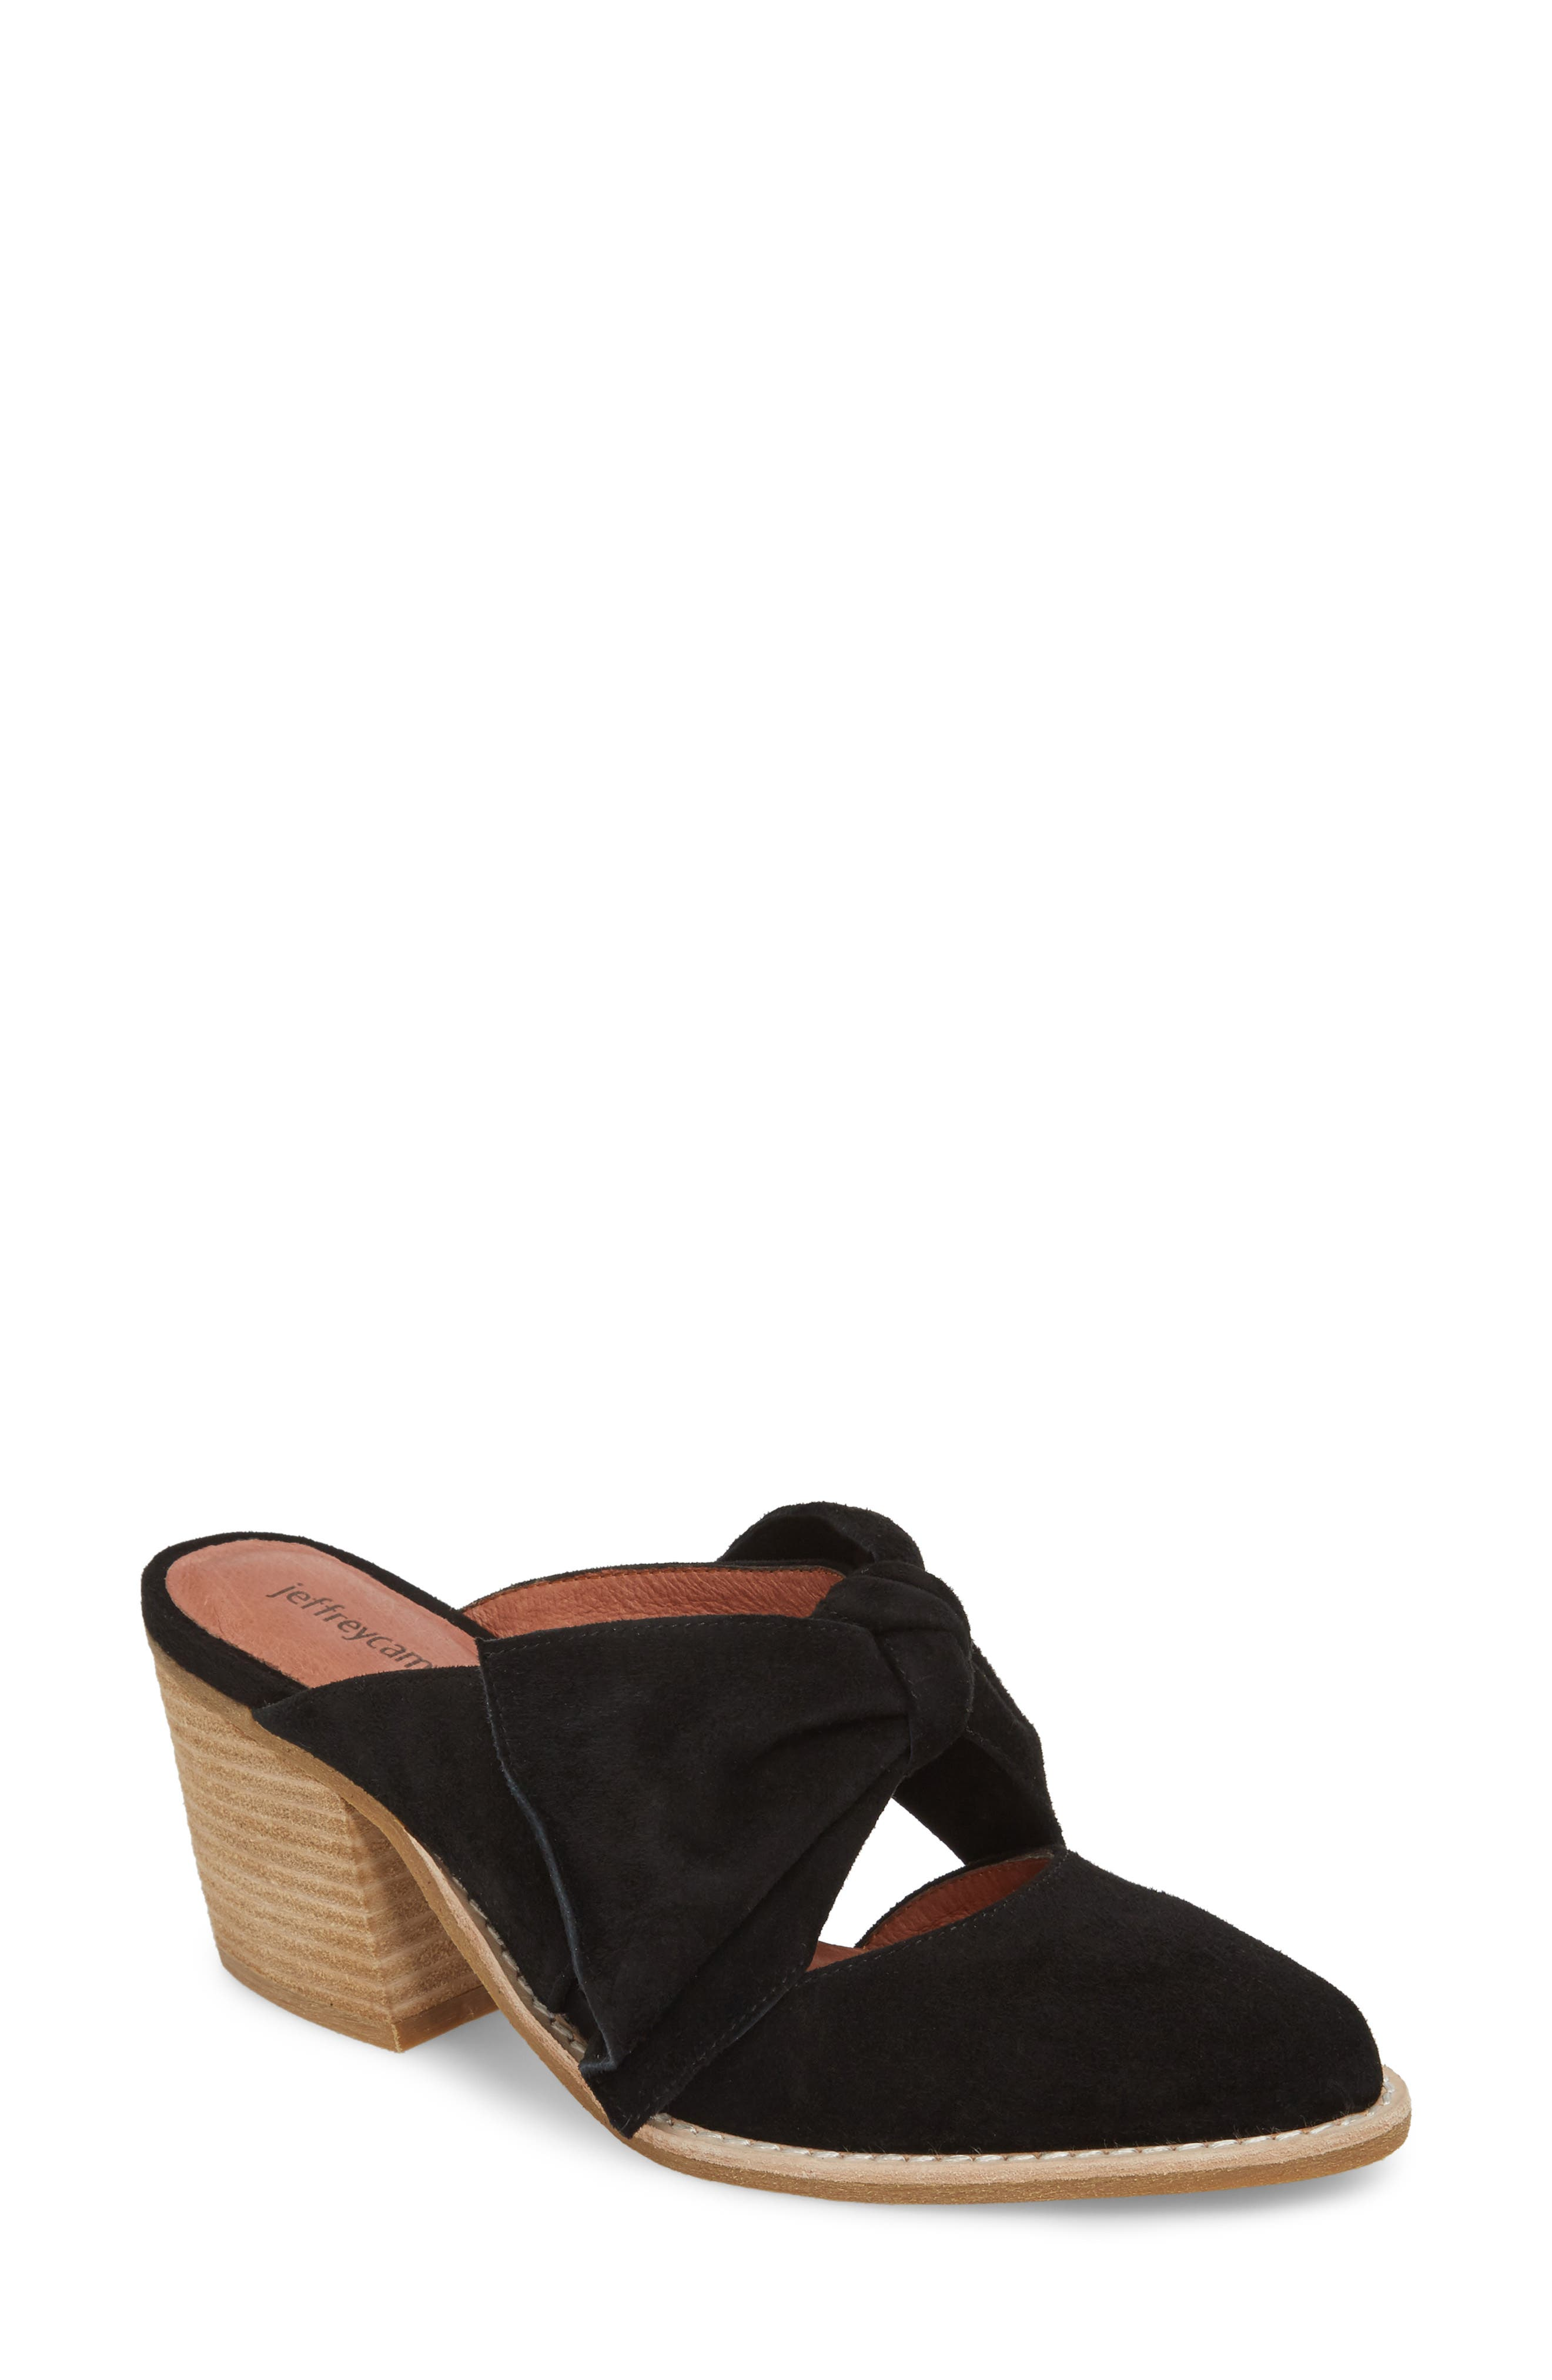 JEFFREY CAMPBELL Cyrus Knotted Mary Jane Mule, Main, color, 001